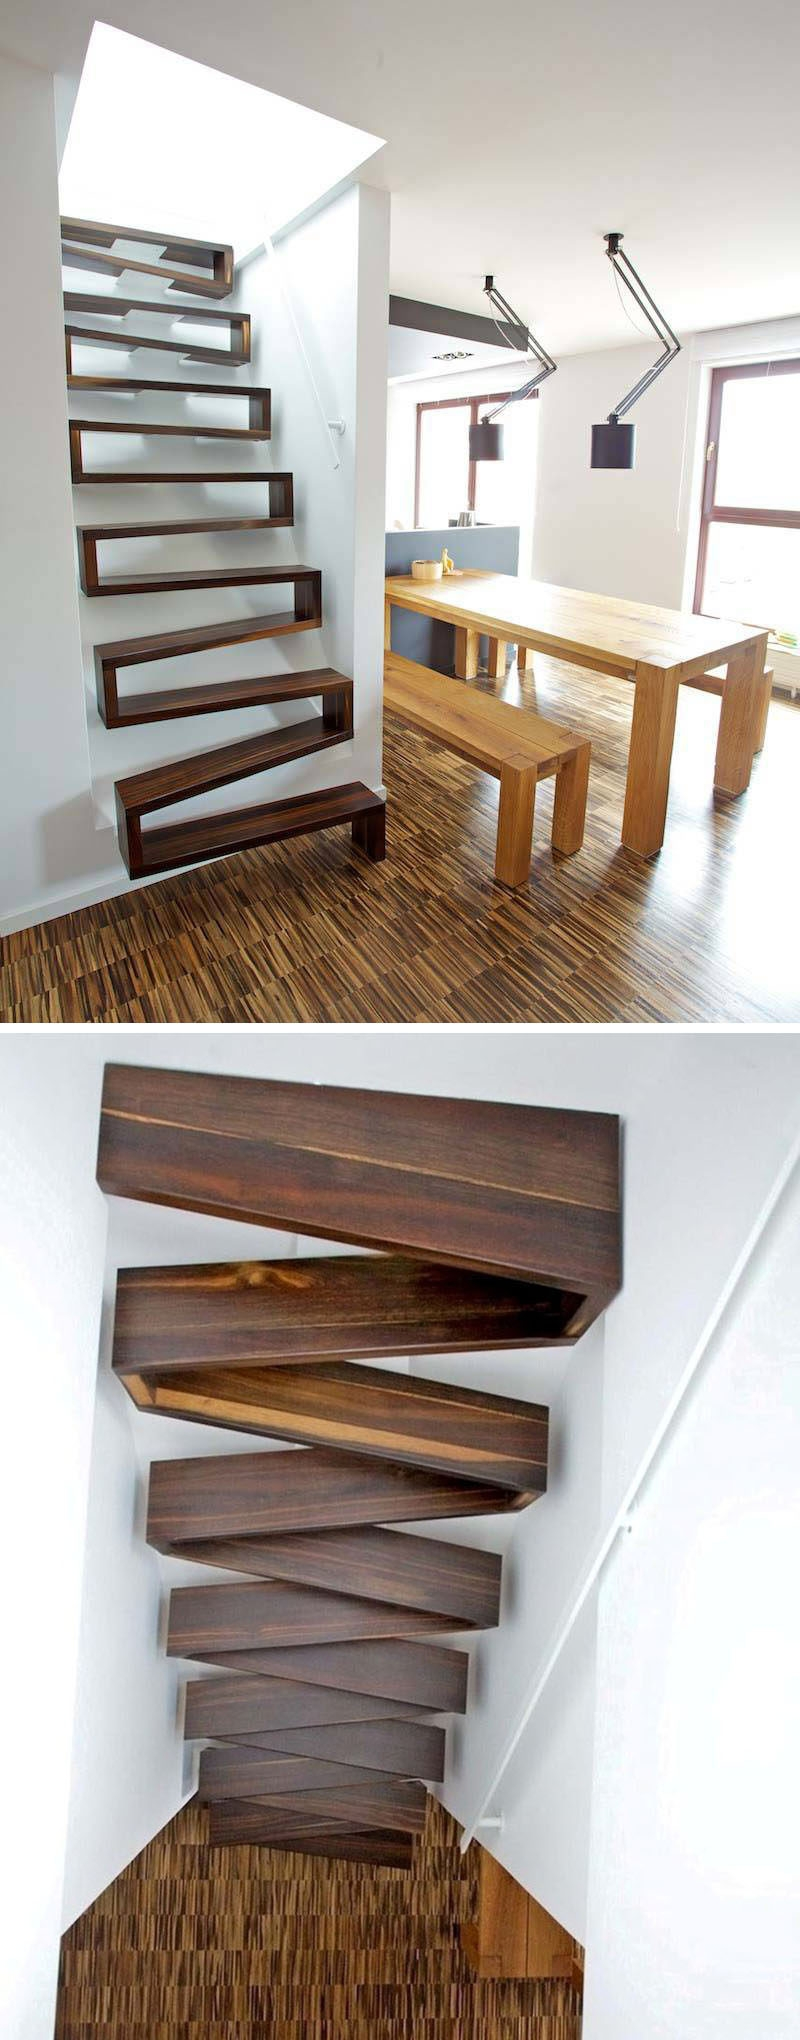 13 Stair Design Ideas For Small Spaces | Design Of Stairs In Small House | Living Room | Family House | Interior | Spiral | 4 Foot